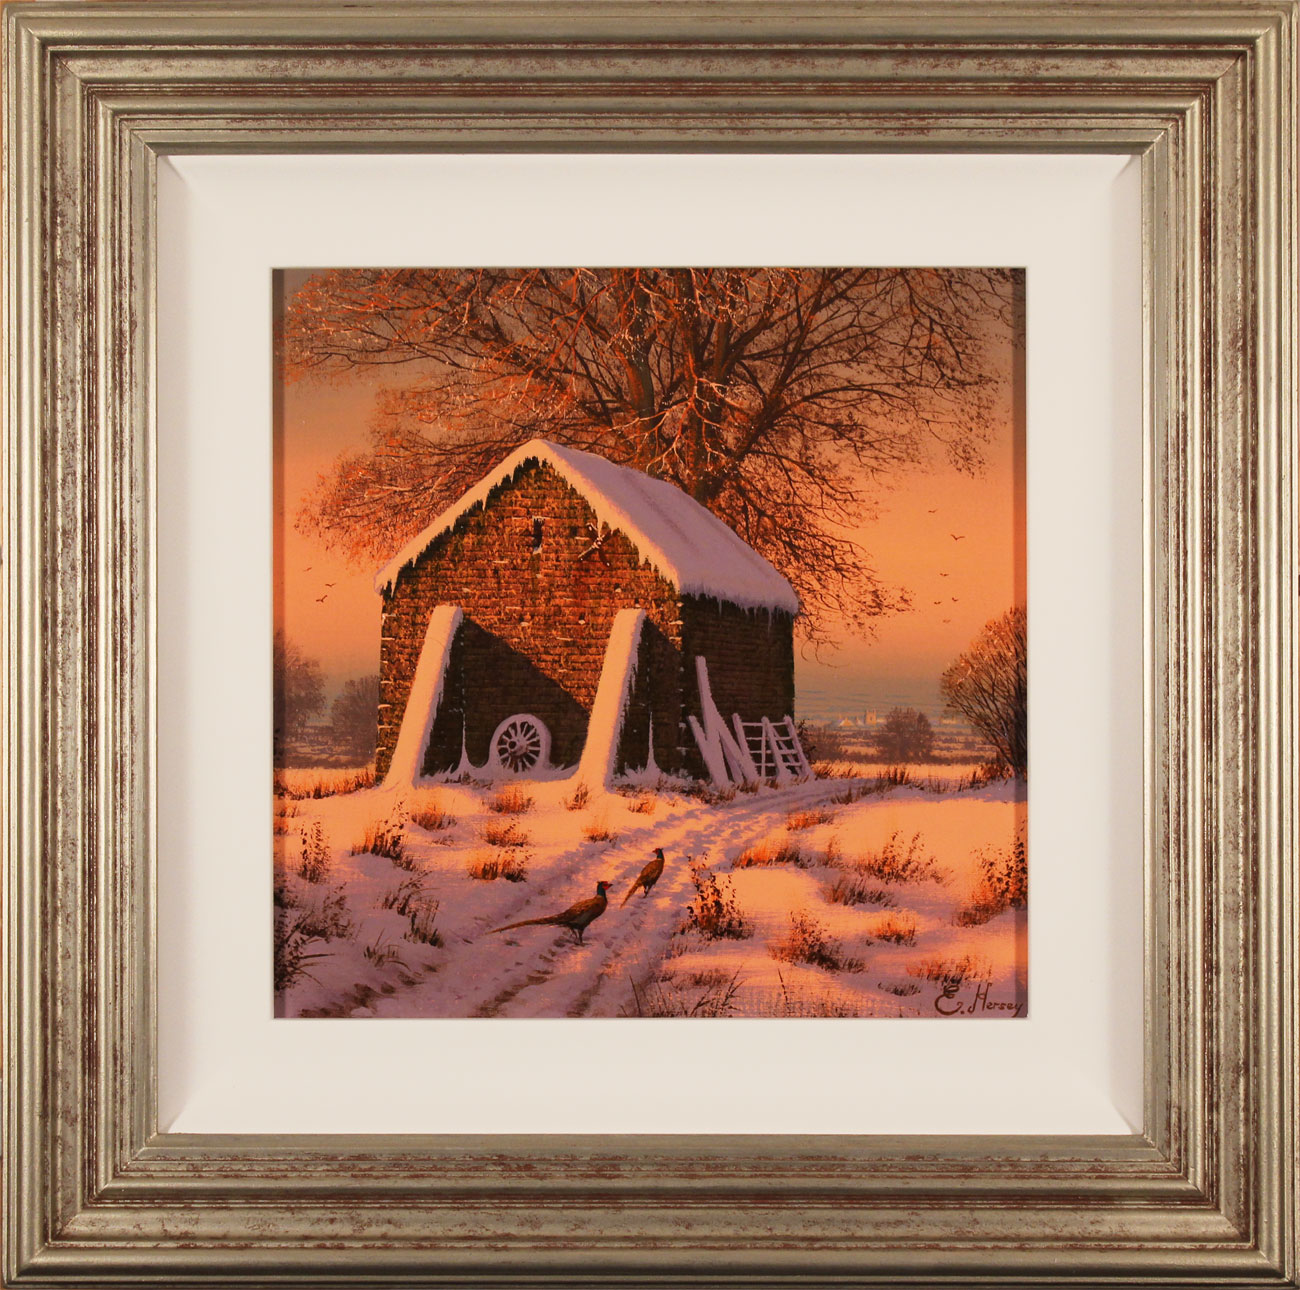 Edward Hersey, Original oil painting on canvas, A Crisp Winter's Eve, click to enlarge